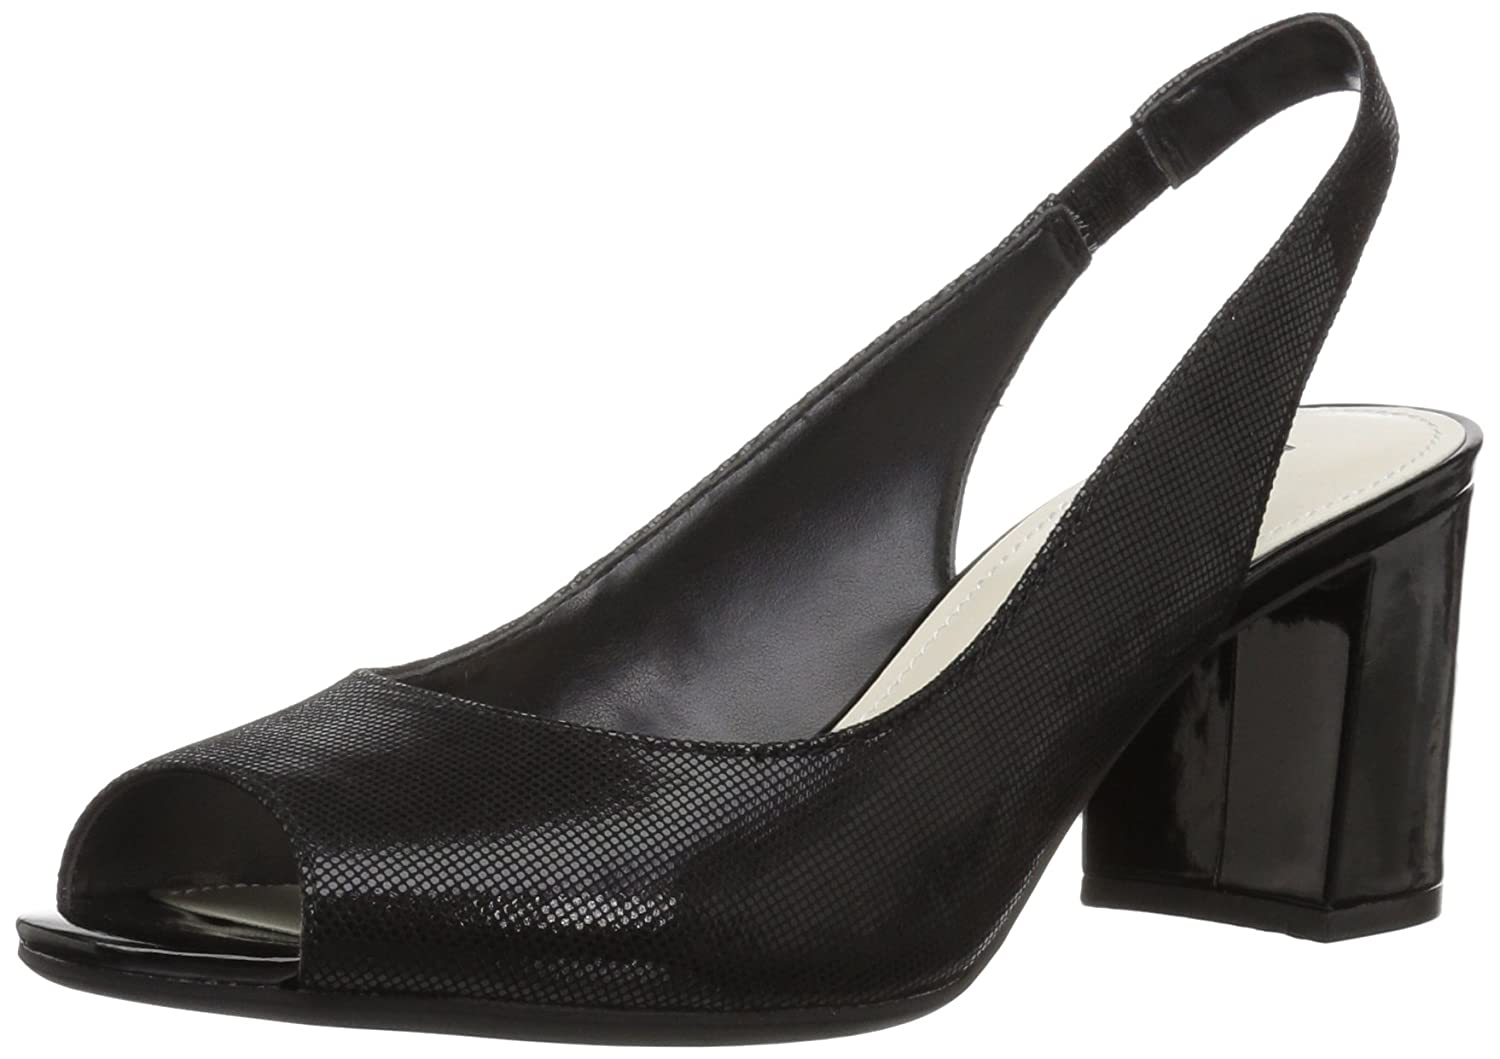 Anne Klein 9.5 Women's Maurise Peep Toe Sling-Back Pump B07BL6LS1X 9.5 Klein M US|Black Fabric bbc167